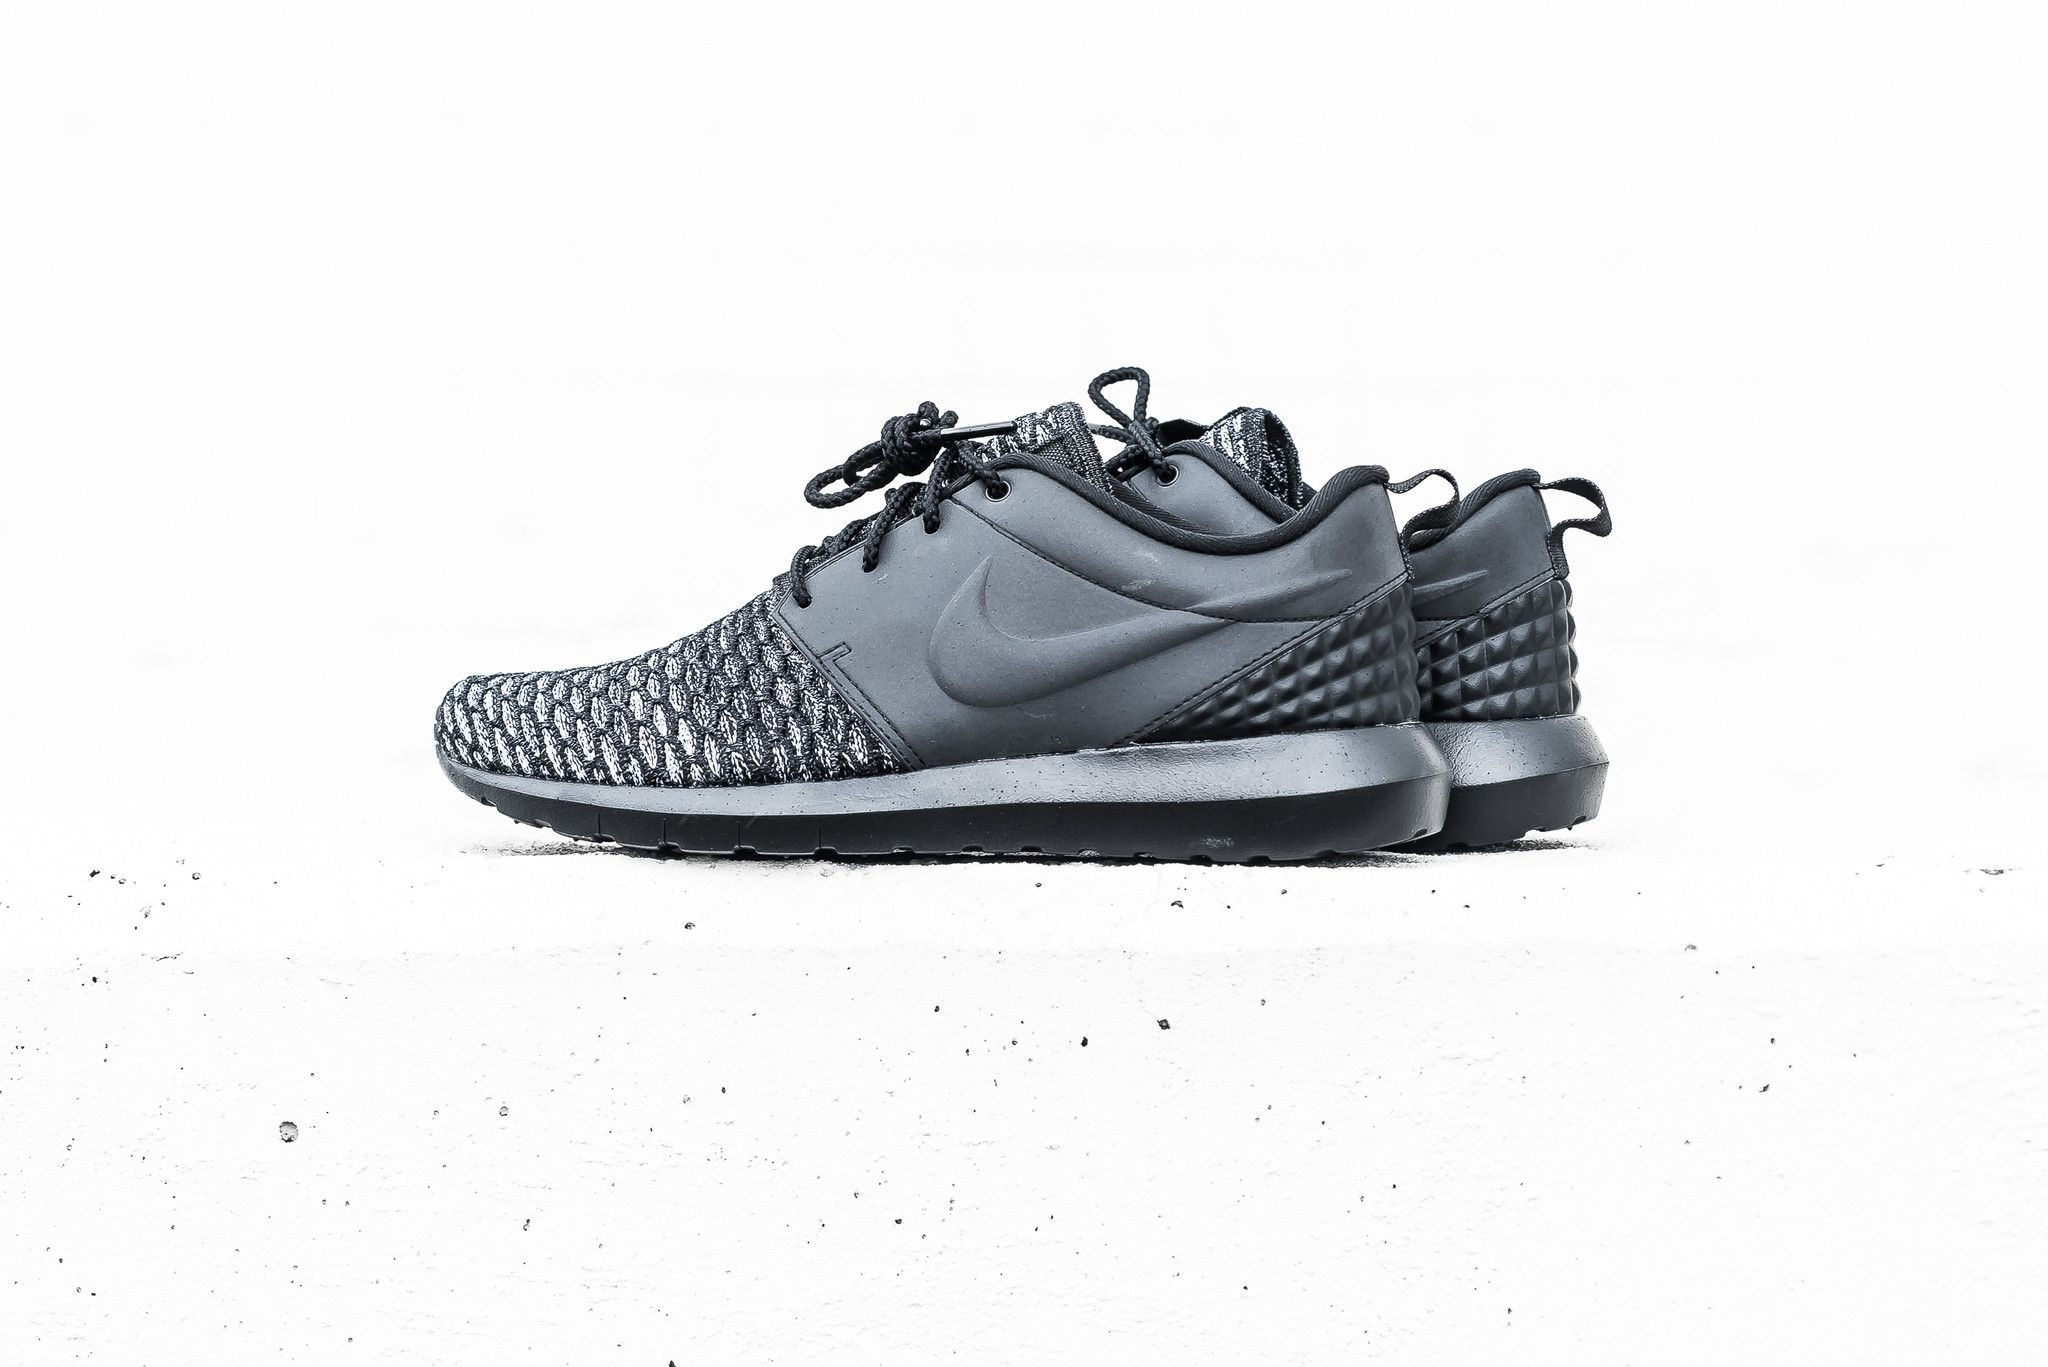 9dceab0fdd3c The NM Flyknit edition of the Nike Roshe One is receiving its latest  colorway in black with dark grey and white mixed in. The sneaker takes on a  blend of t